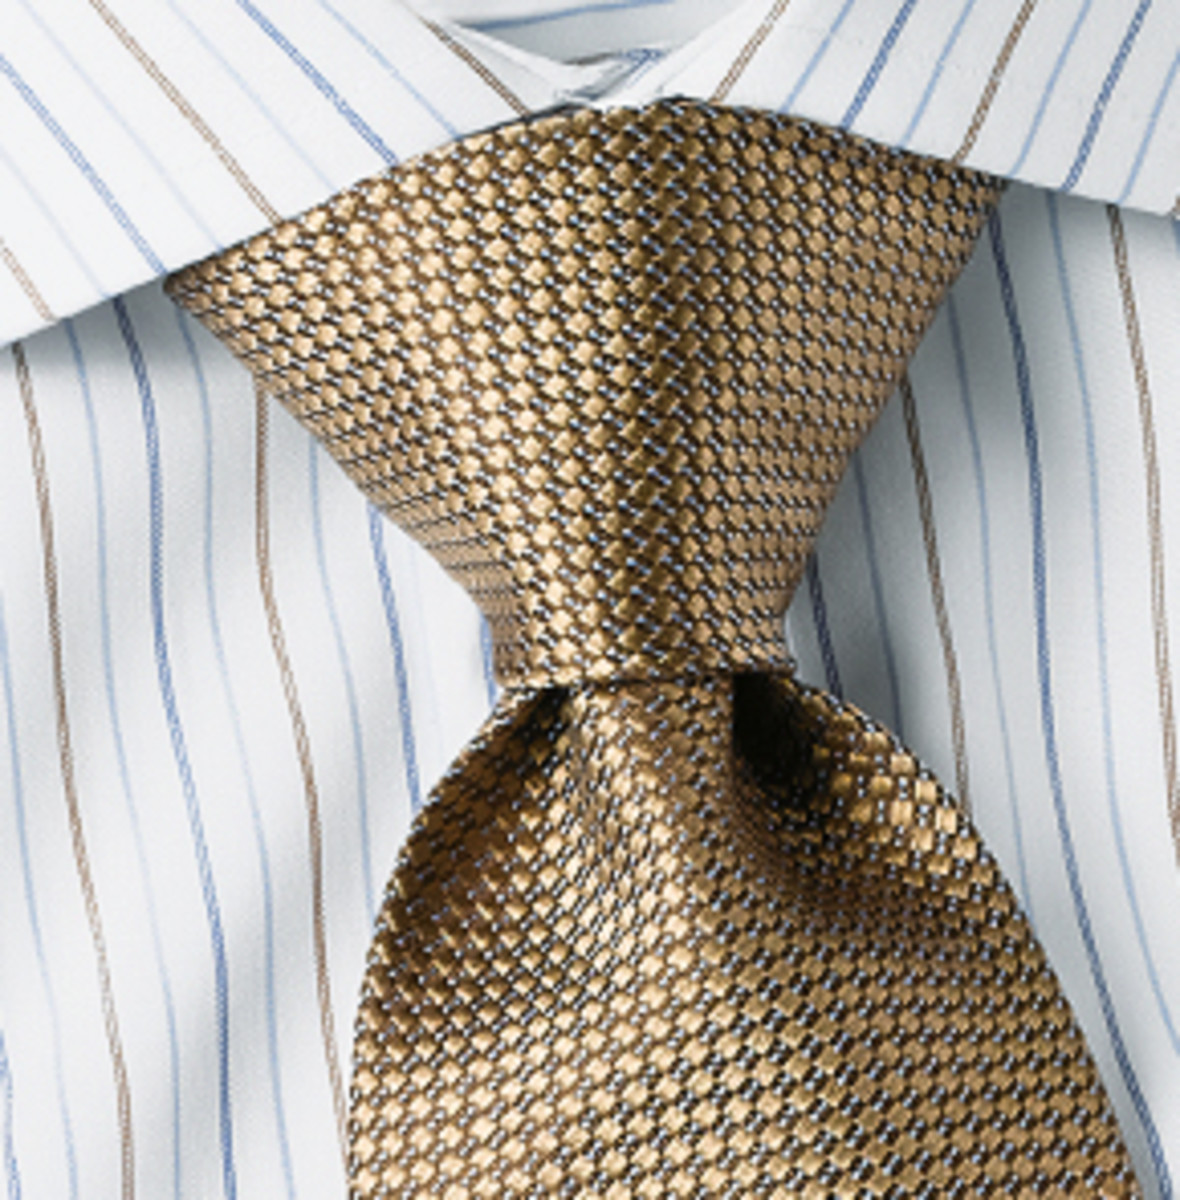 Learn How To Tie A Tie: Windsor, Shell, Four-In-Hand Knots Step-by-Step